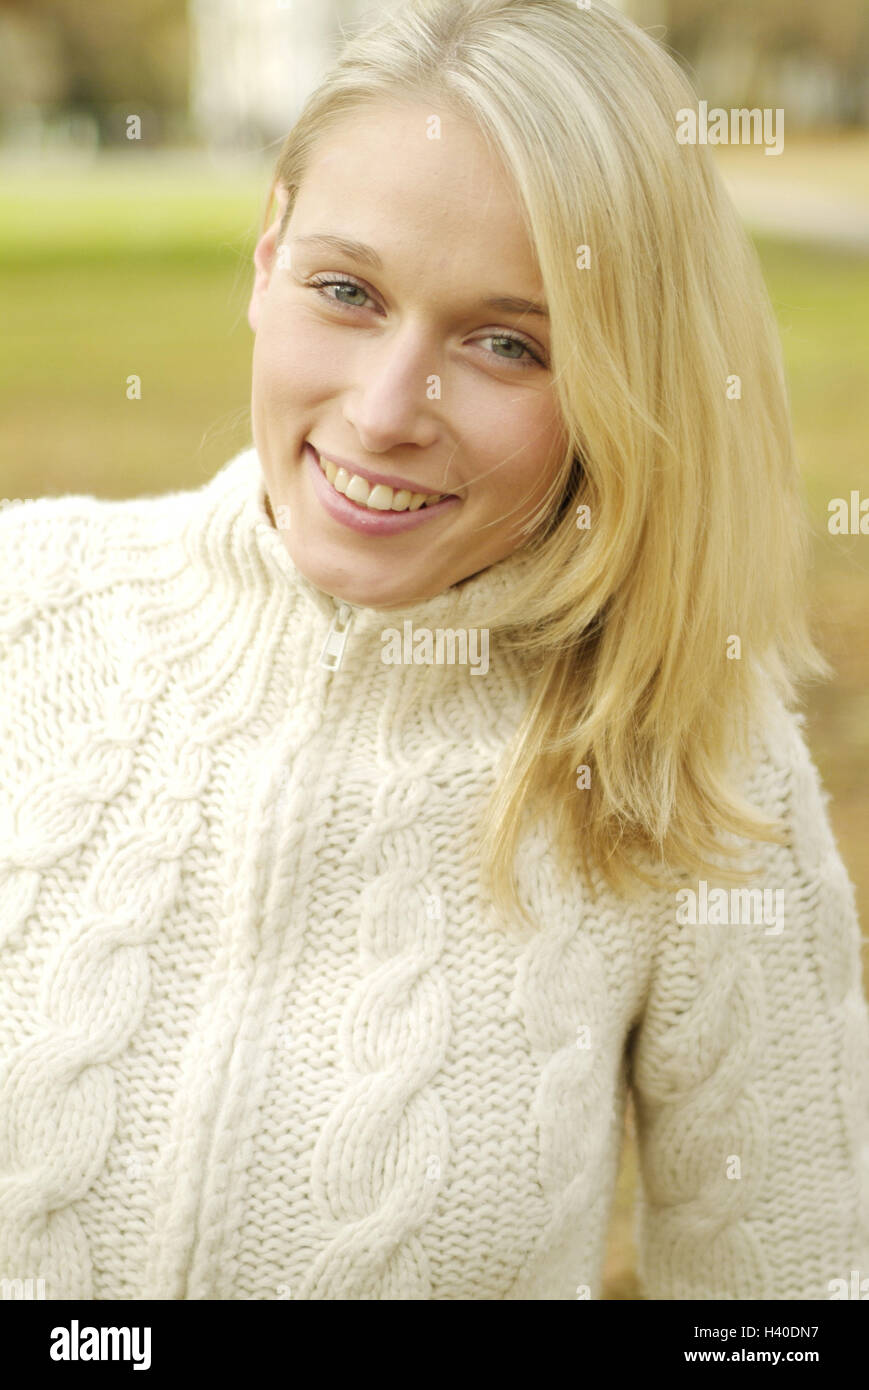 Woman, smile young, blond, portrait, leisure time, 23 years, long-haired, blue eyes, pullover, knitted pullover, - Stock Image